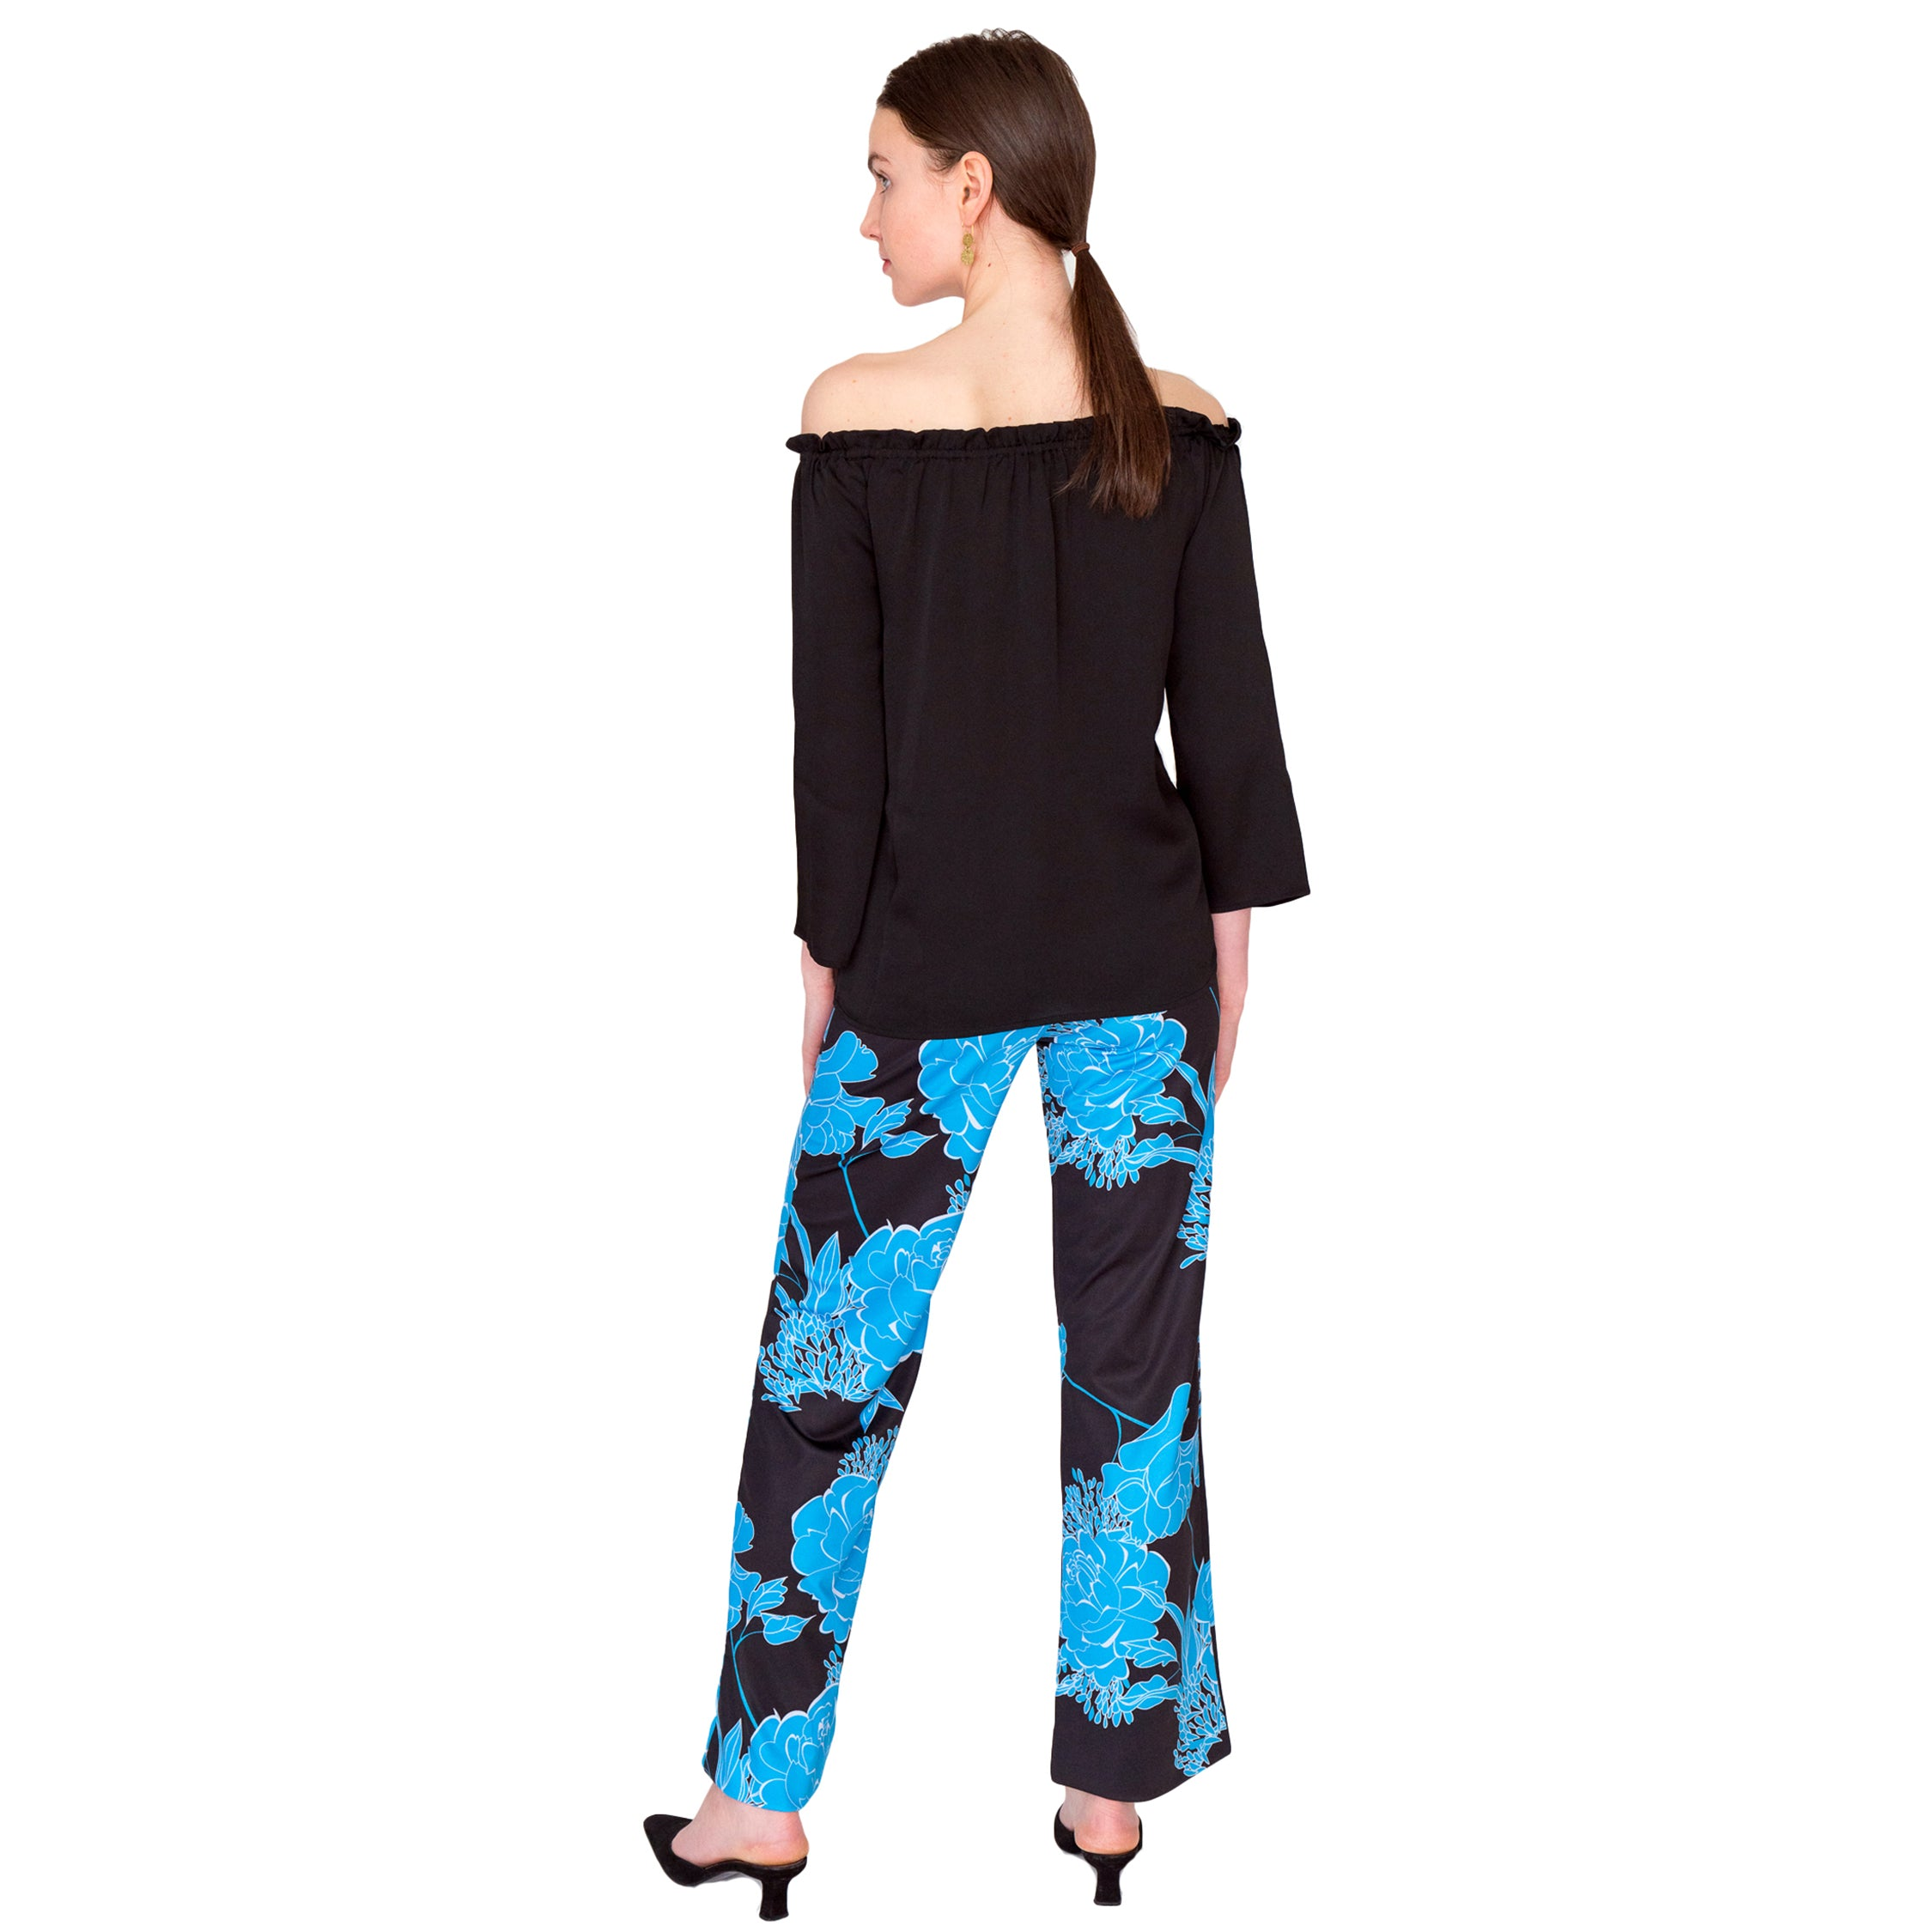 Toby Palazzo Pant in Roses Are Blue - Elizabeth Ackerman New York